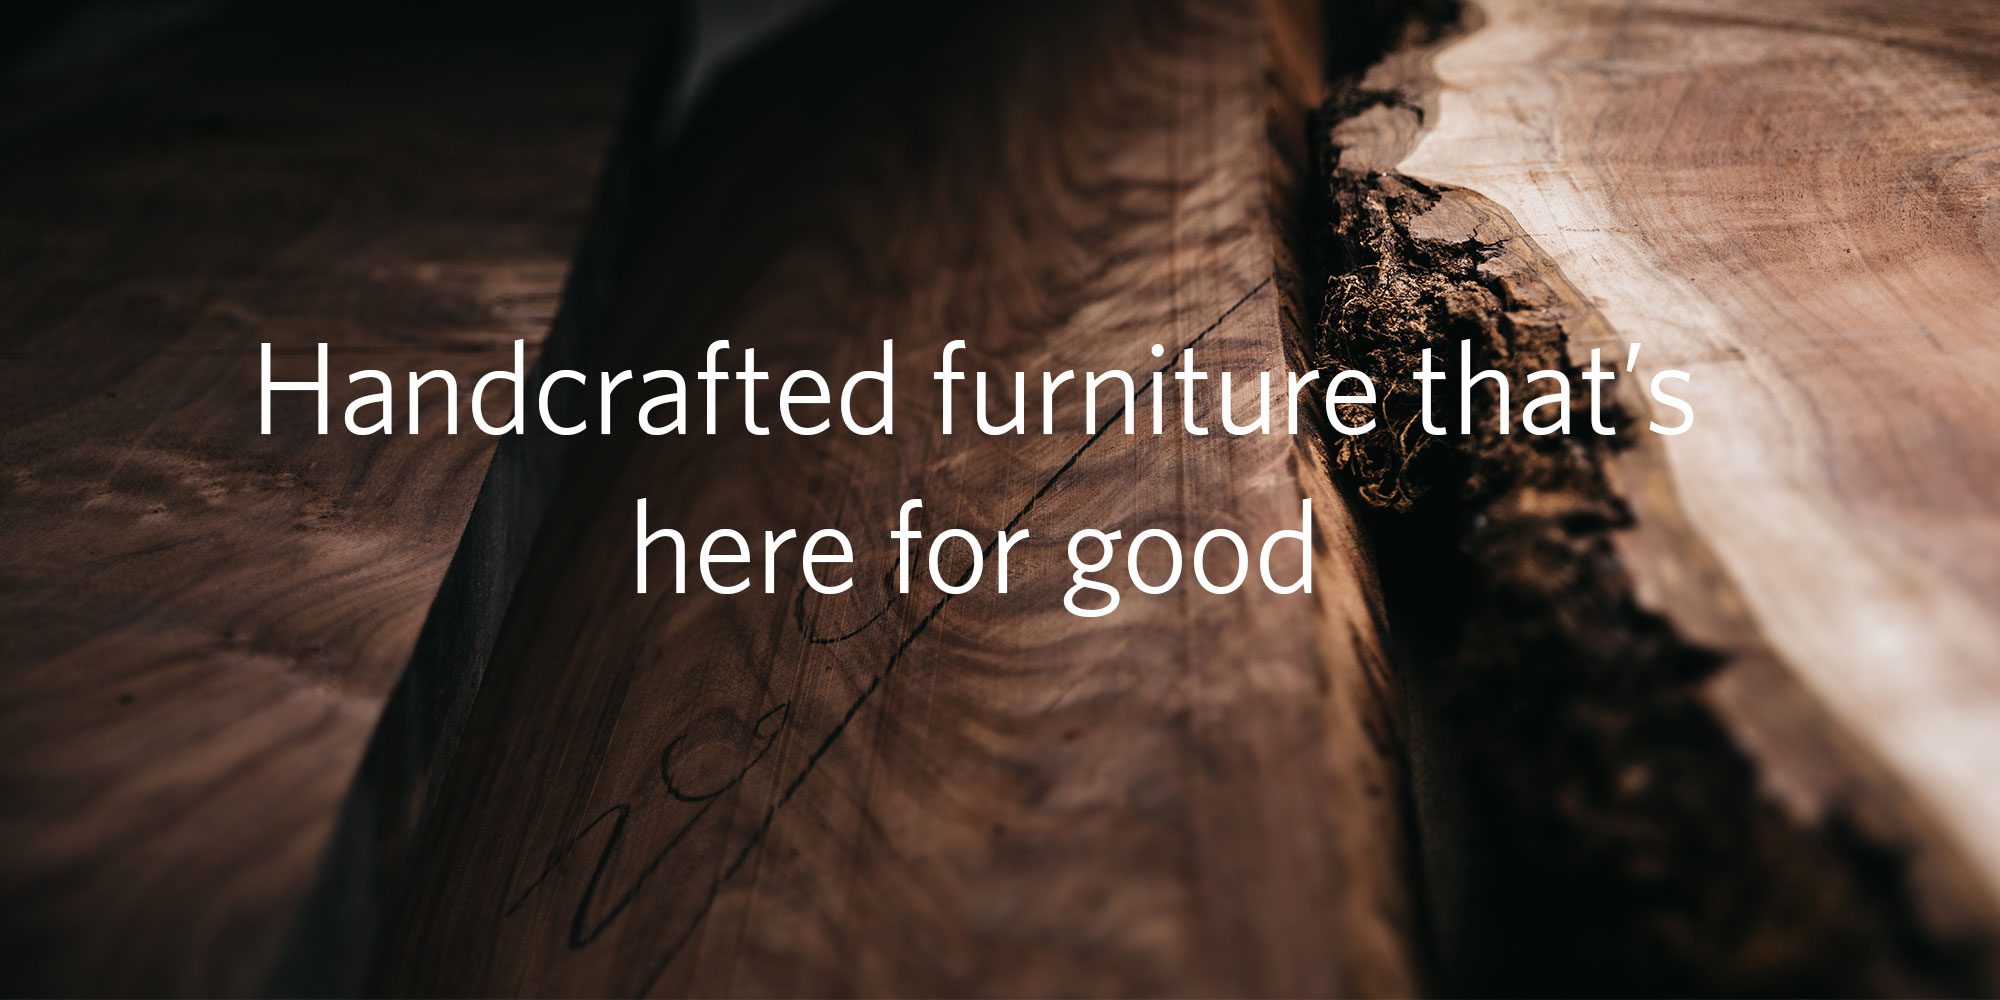 Banner image: Handcrafted furniture that's here for good